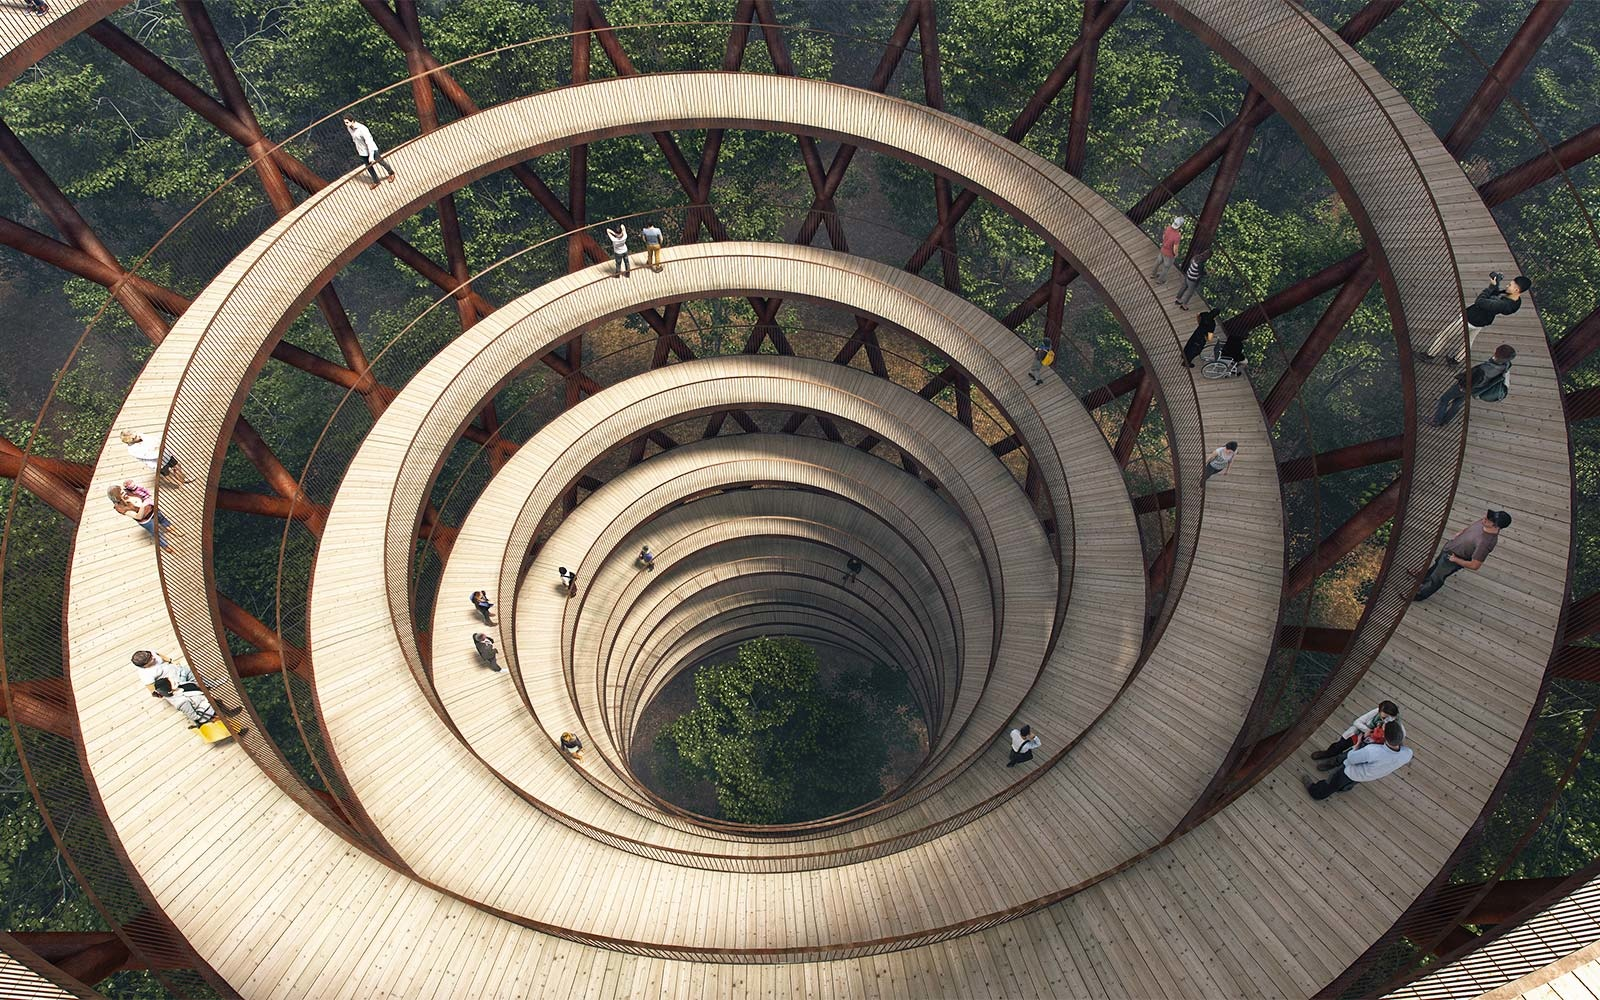 Denmark, Treetop experience, Global traveler, Copenhagen, India, tourism, architecture, NewsMobile, Denmark tourism